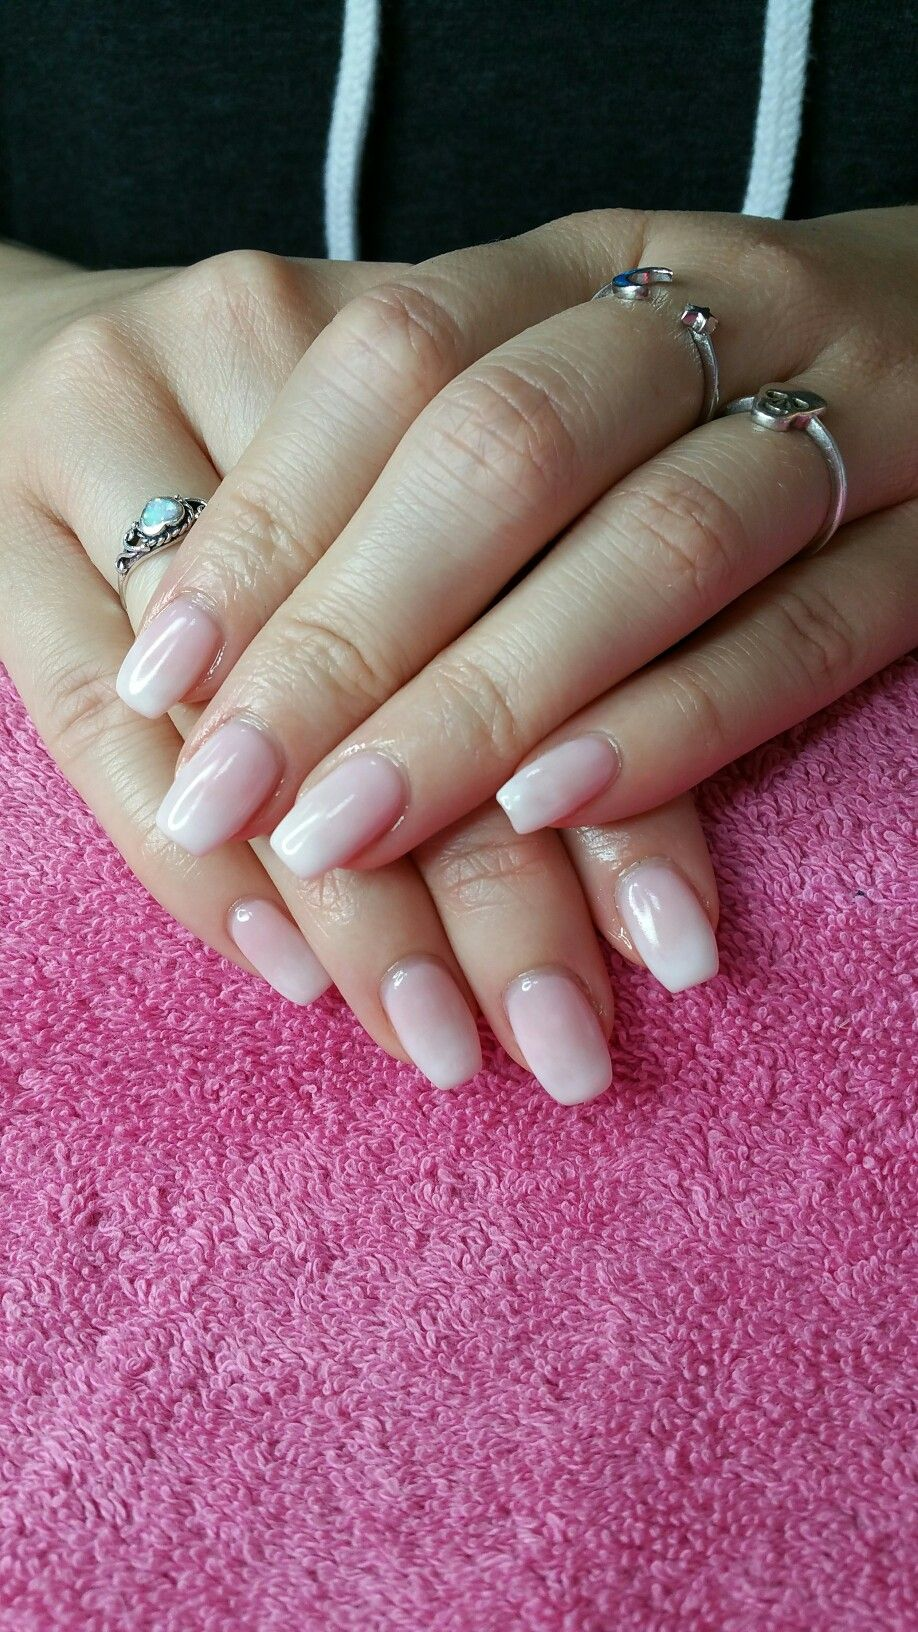 Natural Fade Using Cnd Shellac In Beau And Studio White Cnd Shellac Cndshellac Beau Studiowhite Naturalfade Fre Trendy Nails Faded Nails White Nails